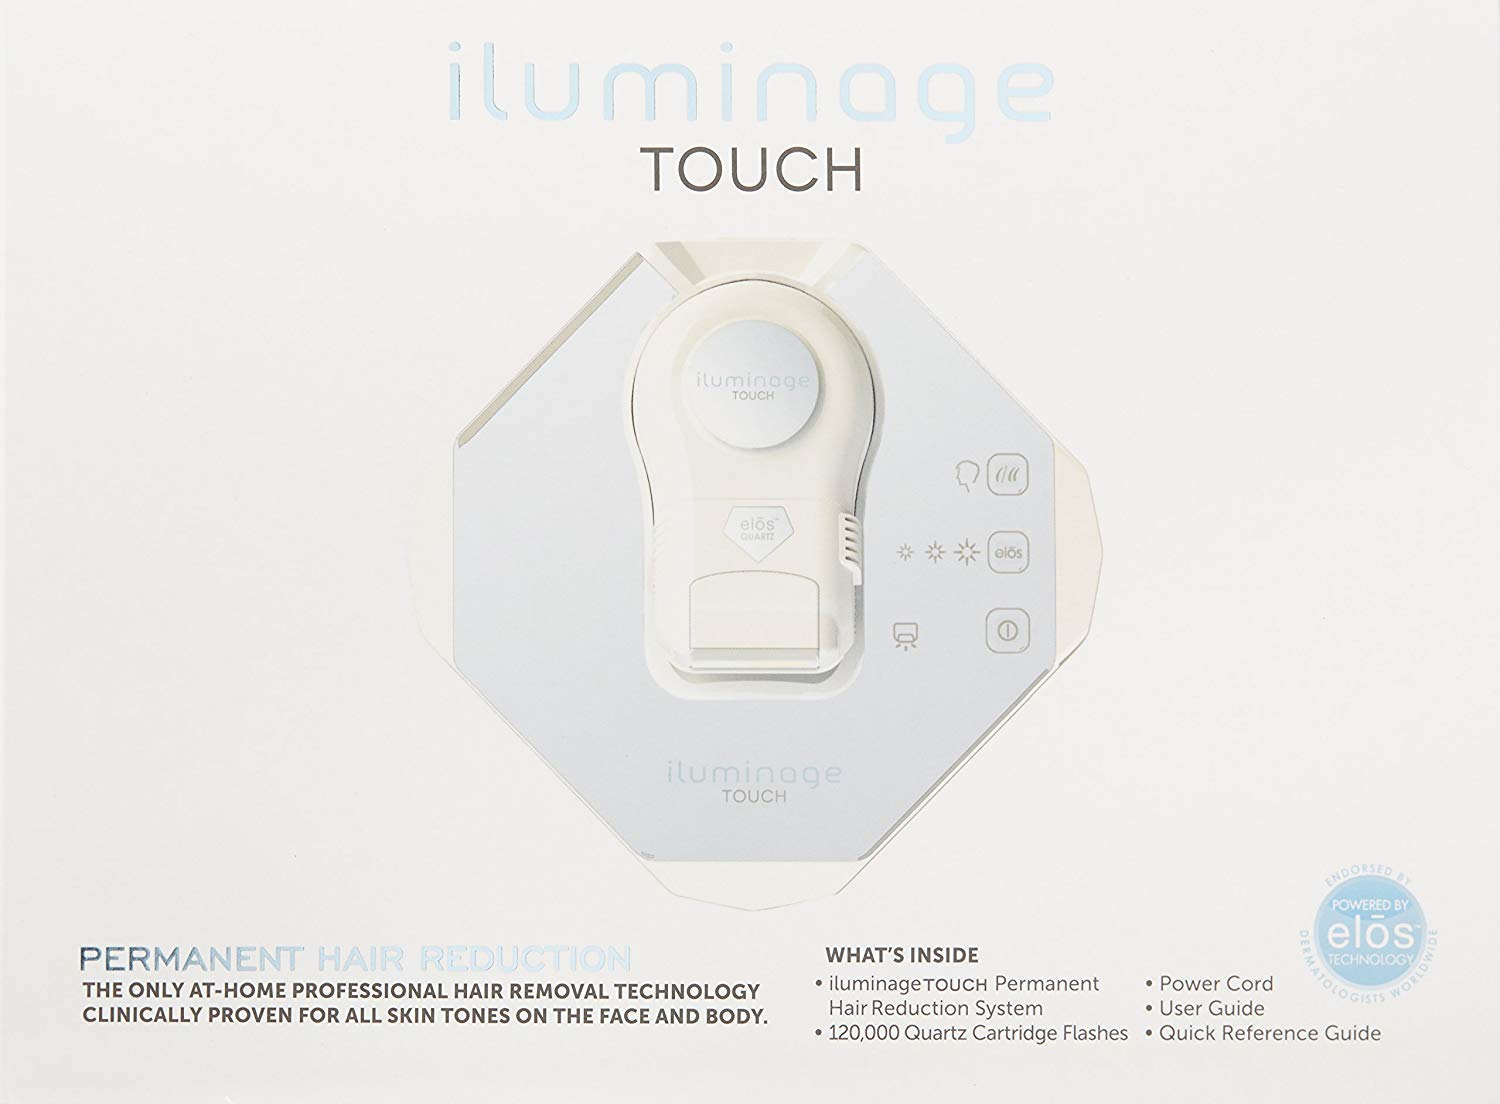 iluminage. Touch At Home Permanent Hair Reduction Device (FDA-Cleared IPL & RF - All Skin Colors)